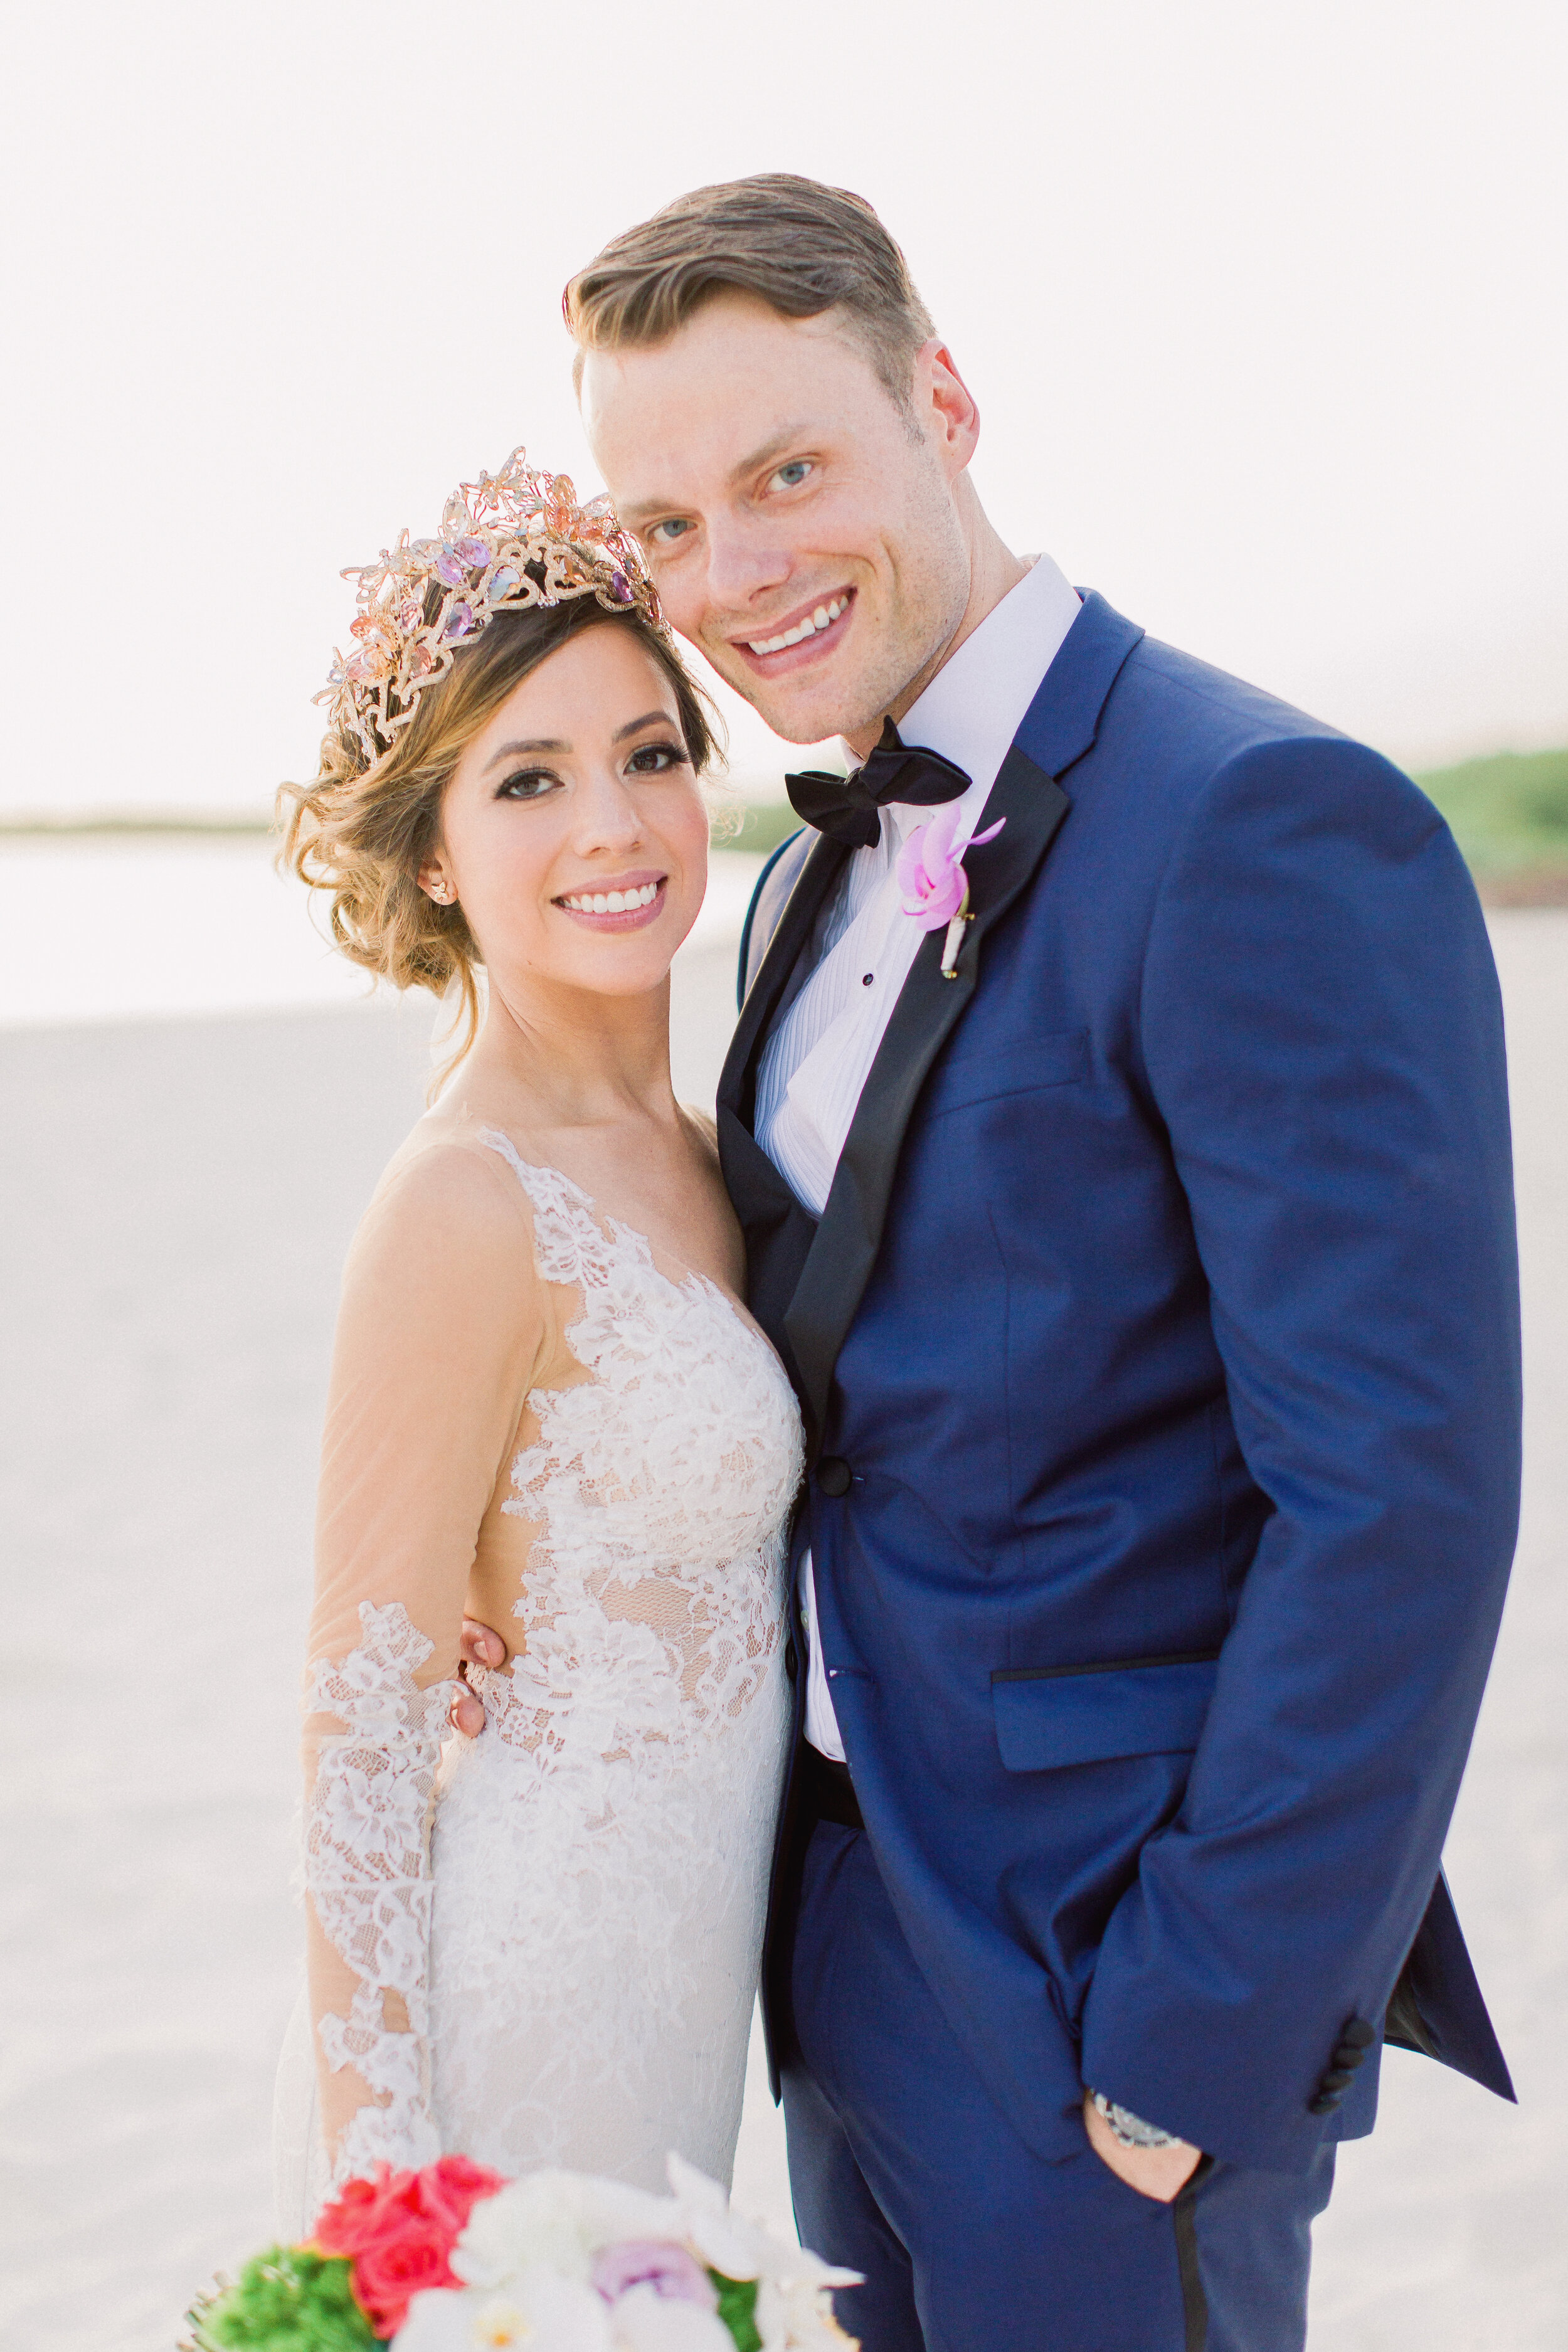 bride and groom at beach wedding in mexico bride wearing a long sleeve lace gown with colorful crown by maria elena headpieces